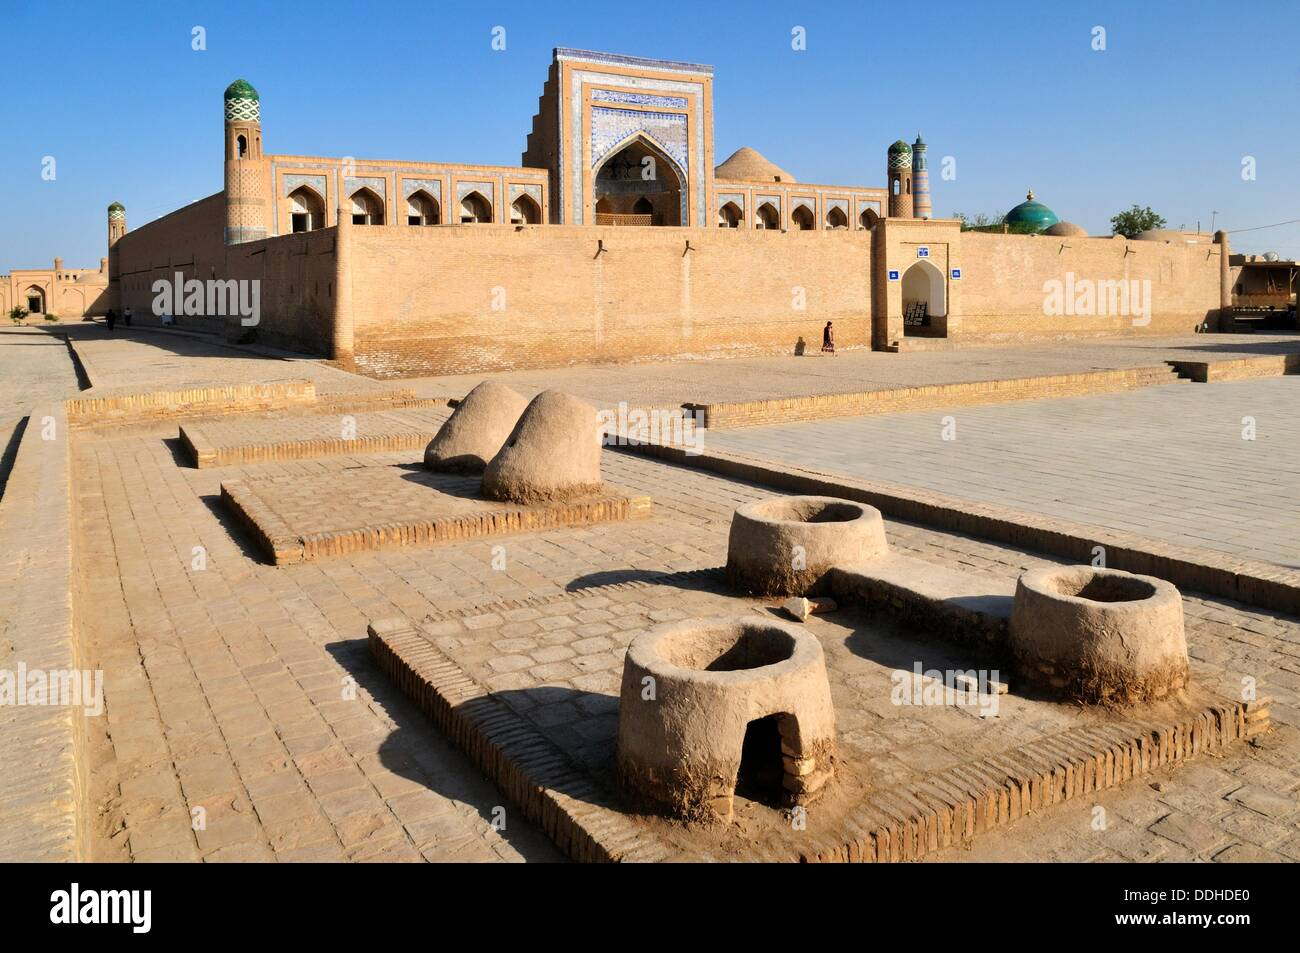 Muhammad Rakhim Chan Madrassah, Ichan Kala, historic adobe oldtown of Khiva, Chiva, Silk Road, Unesco World Heritage Site, - Stock Image